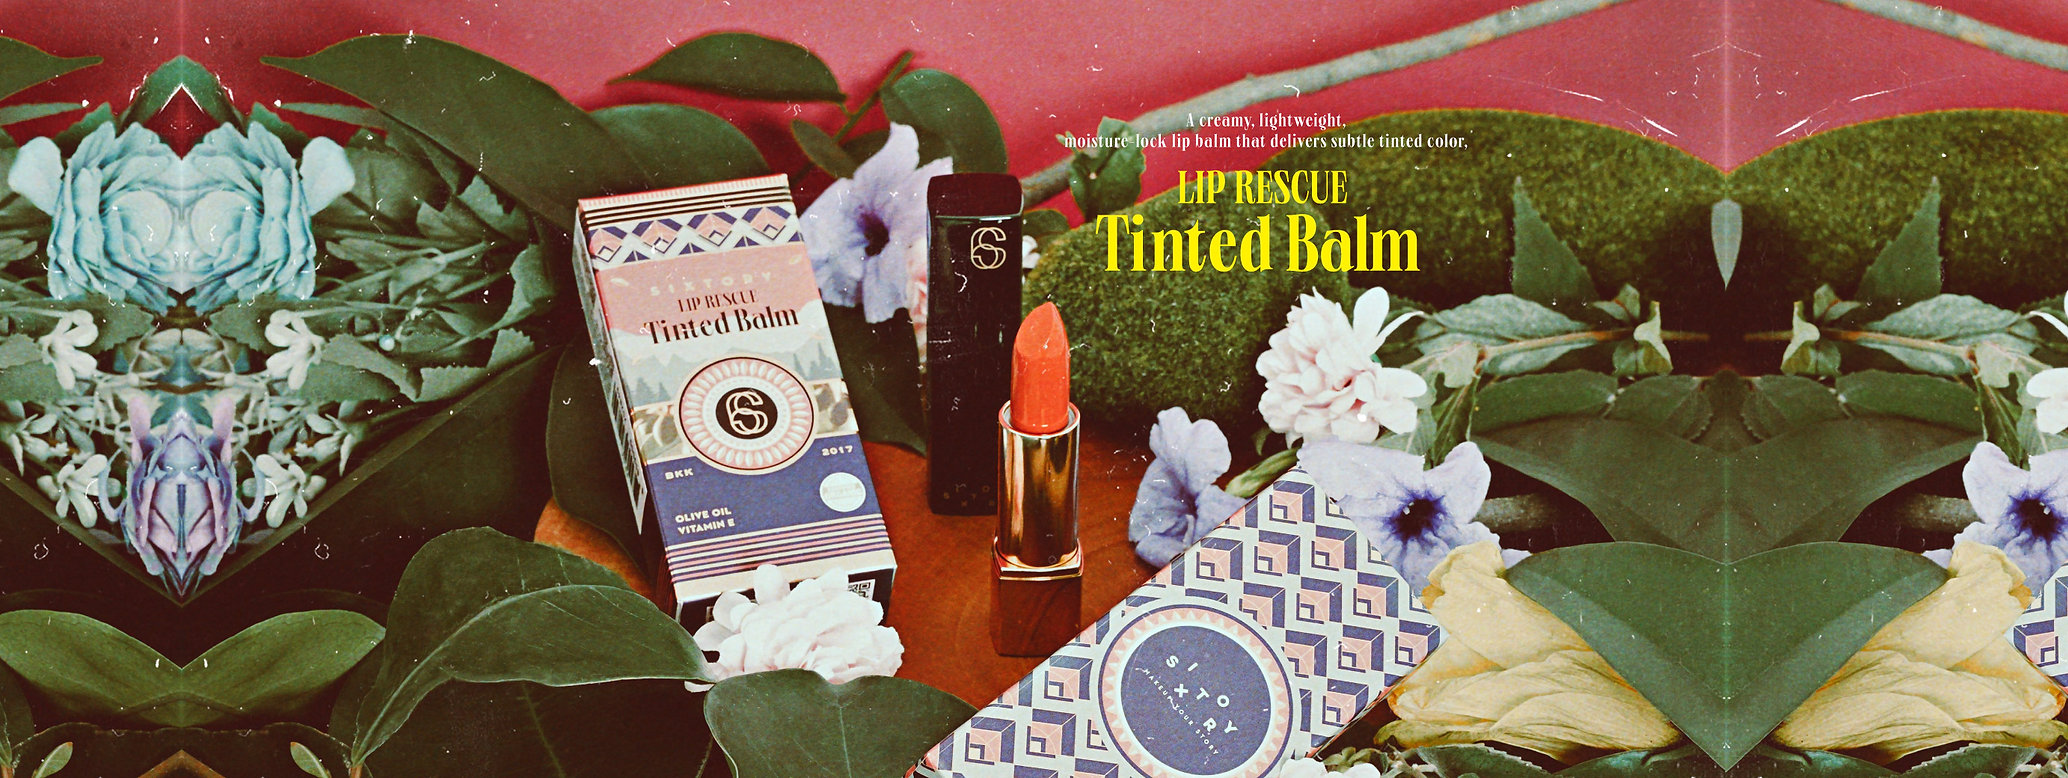 Web-Lip-Rescue-Tinted-Balm_Banner_2.jpg